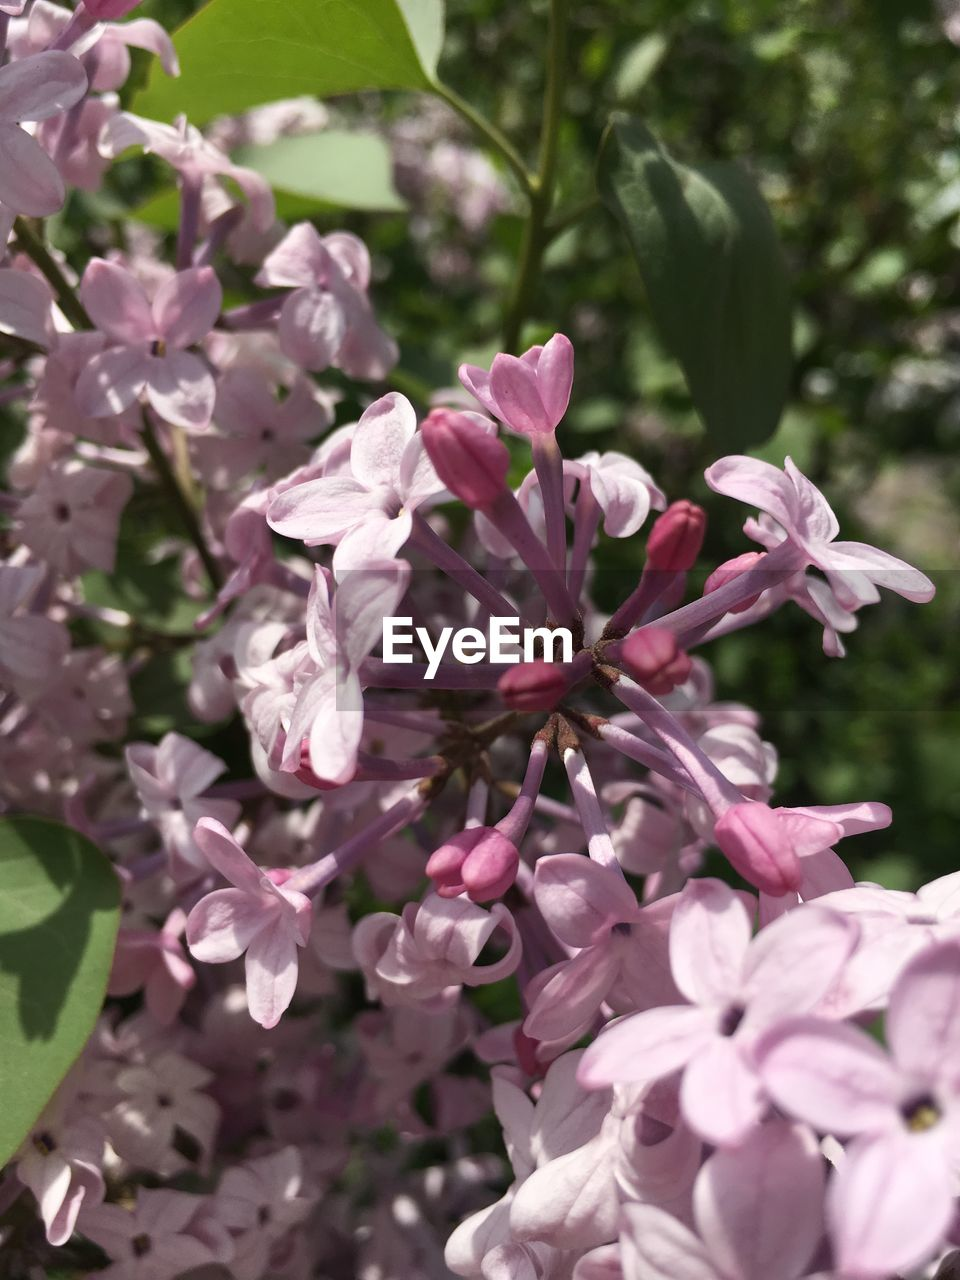 flower, flowering plant, plant, freshness, beauty in nature, vulnerability, fragility, growth, pink color, petal, close-up, day, nature, no people, flower head, inflorescence, outdoors, blossom, springtime, botany, lilac, purple, bunch of flowers, spring